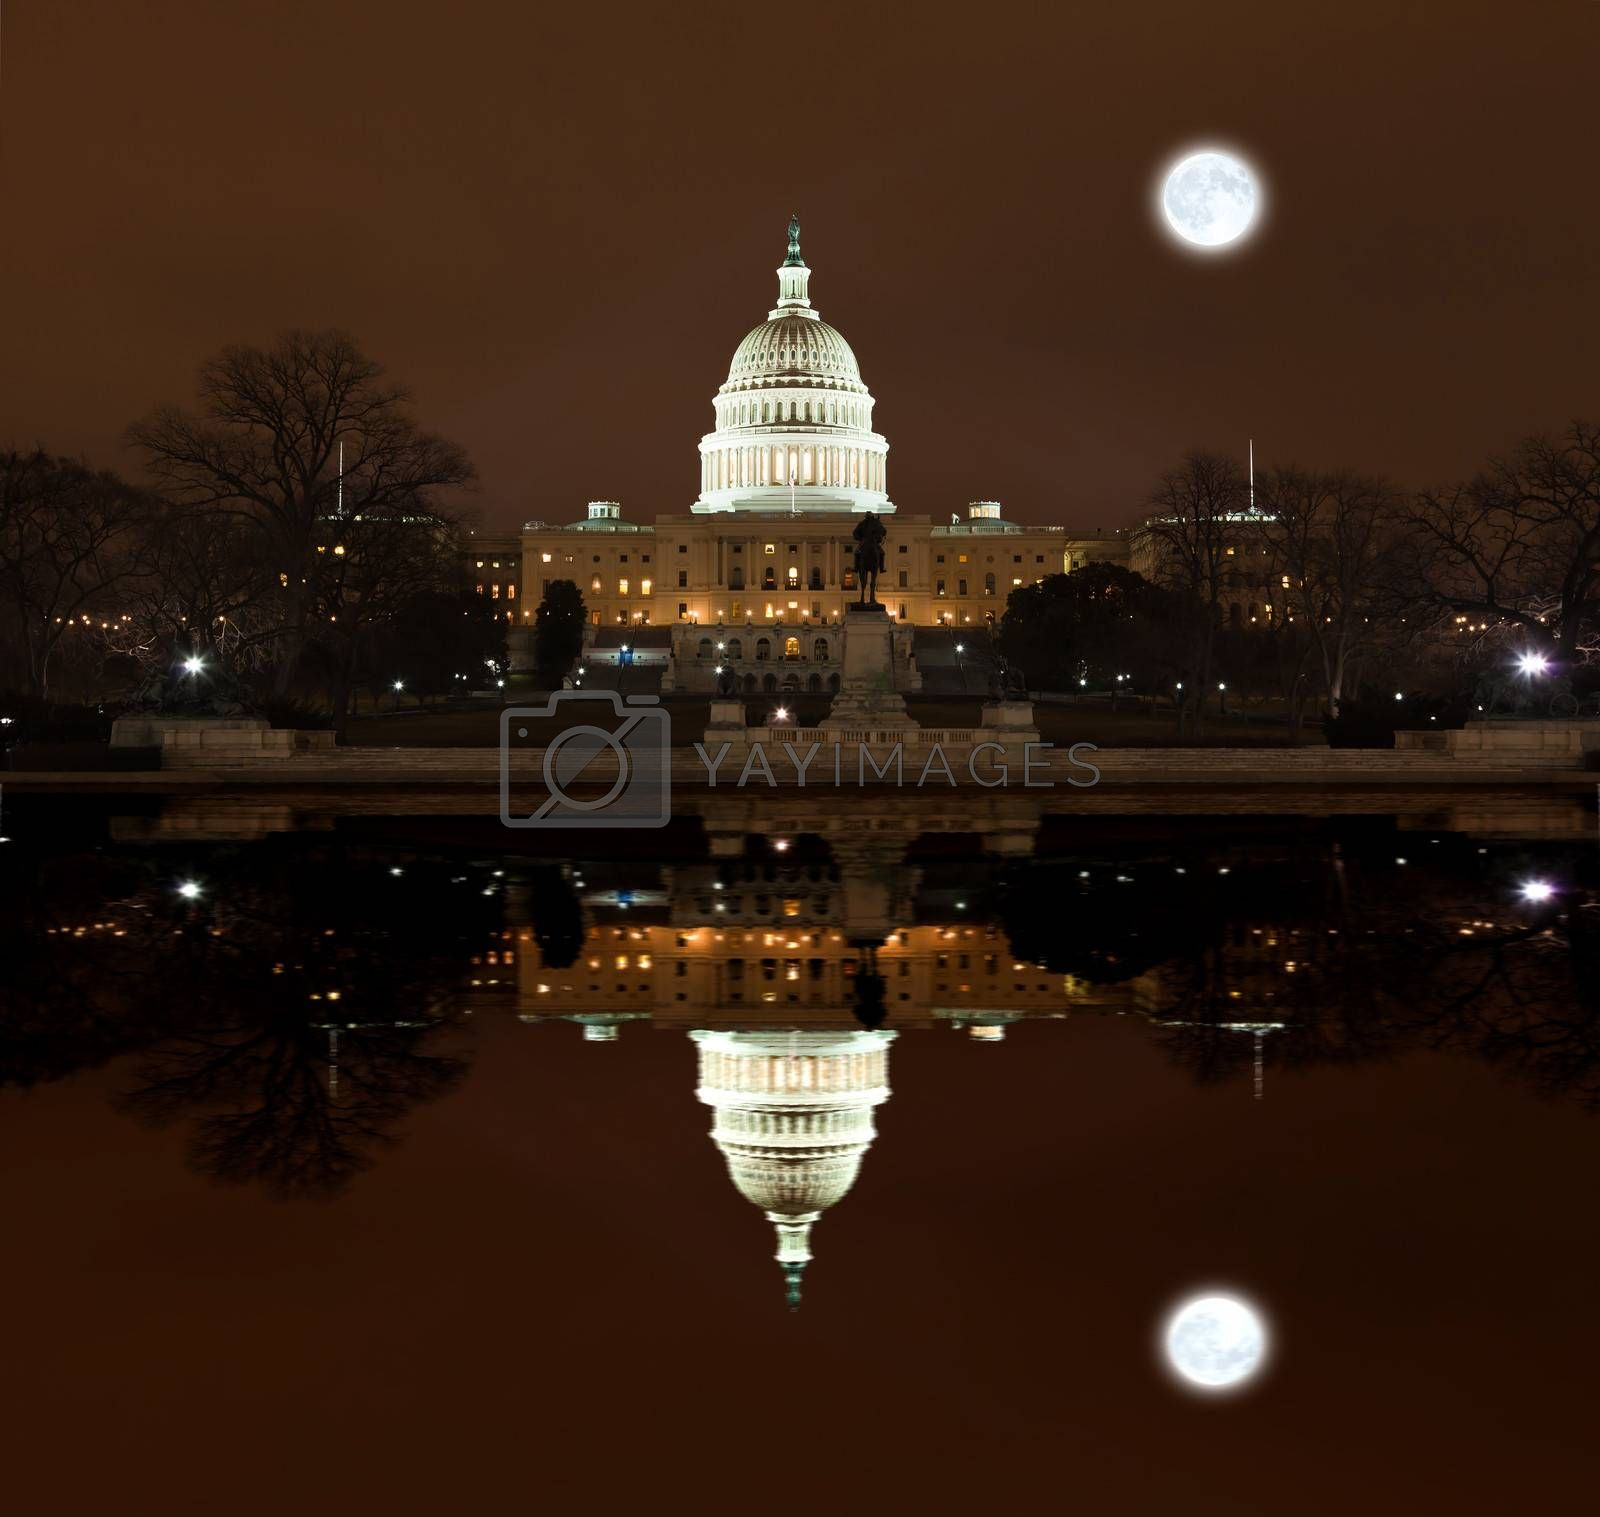 Royalty free image of United States Capitol Building at night by gary718